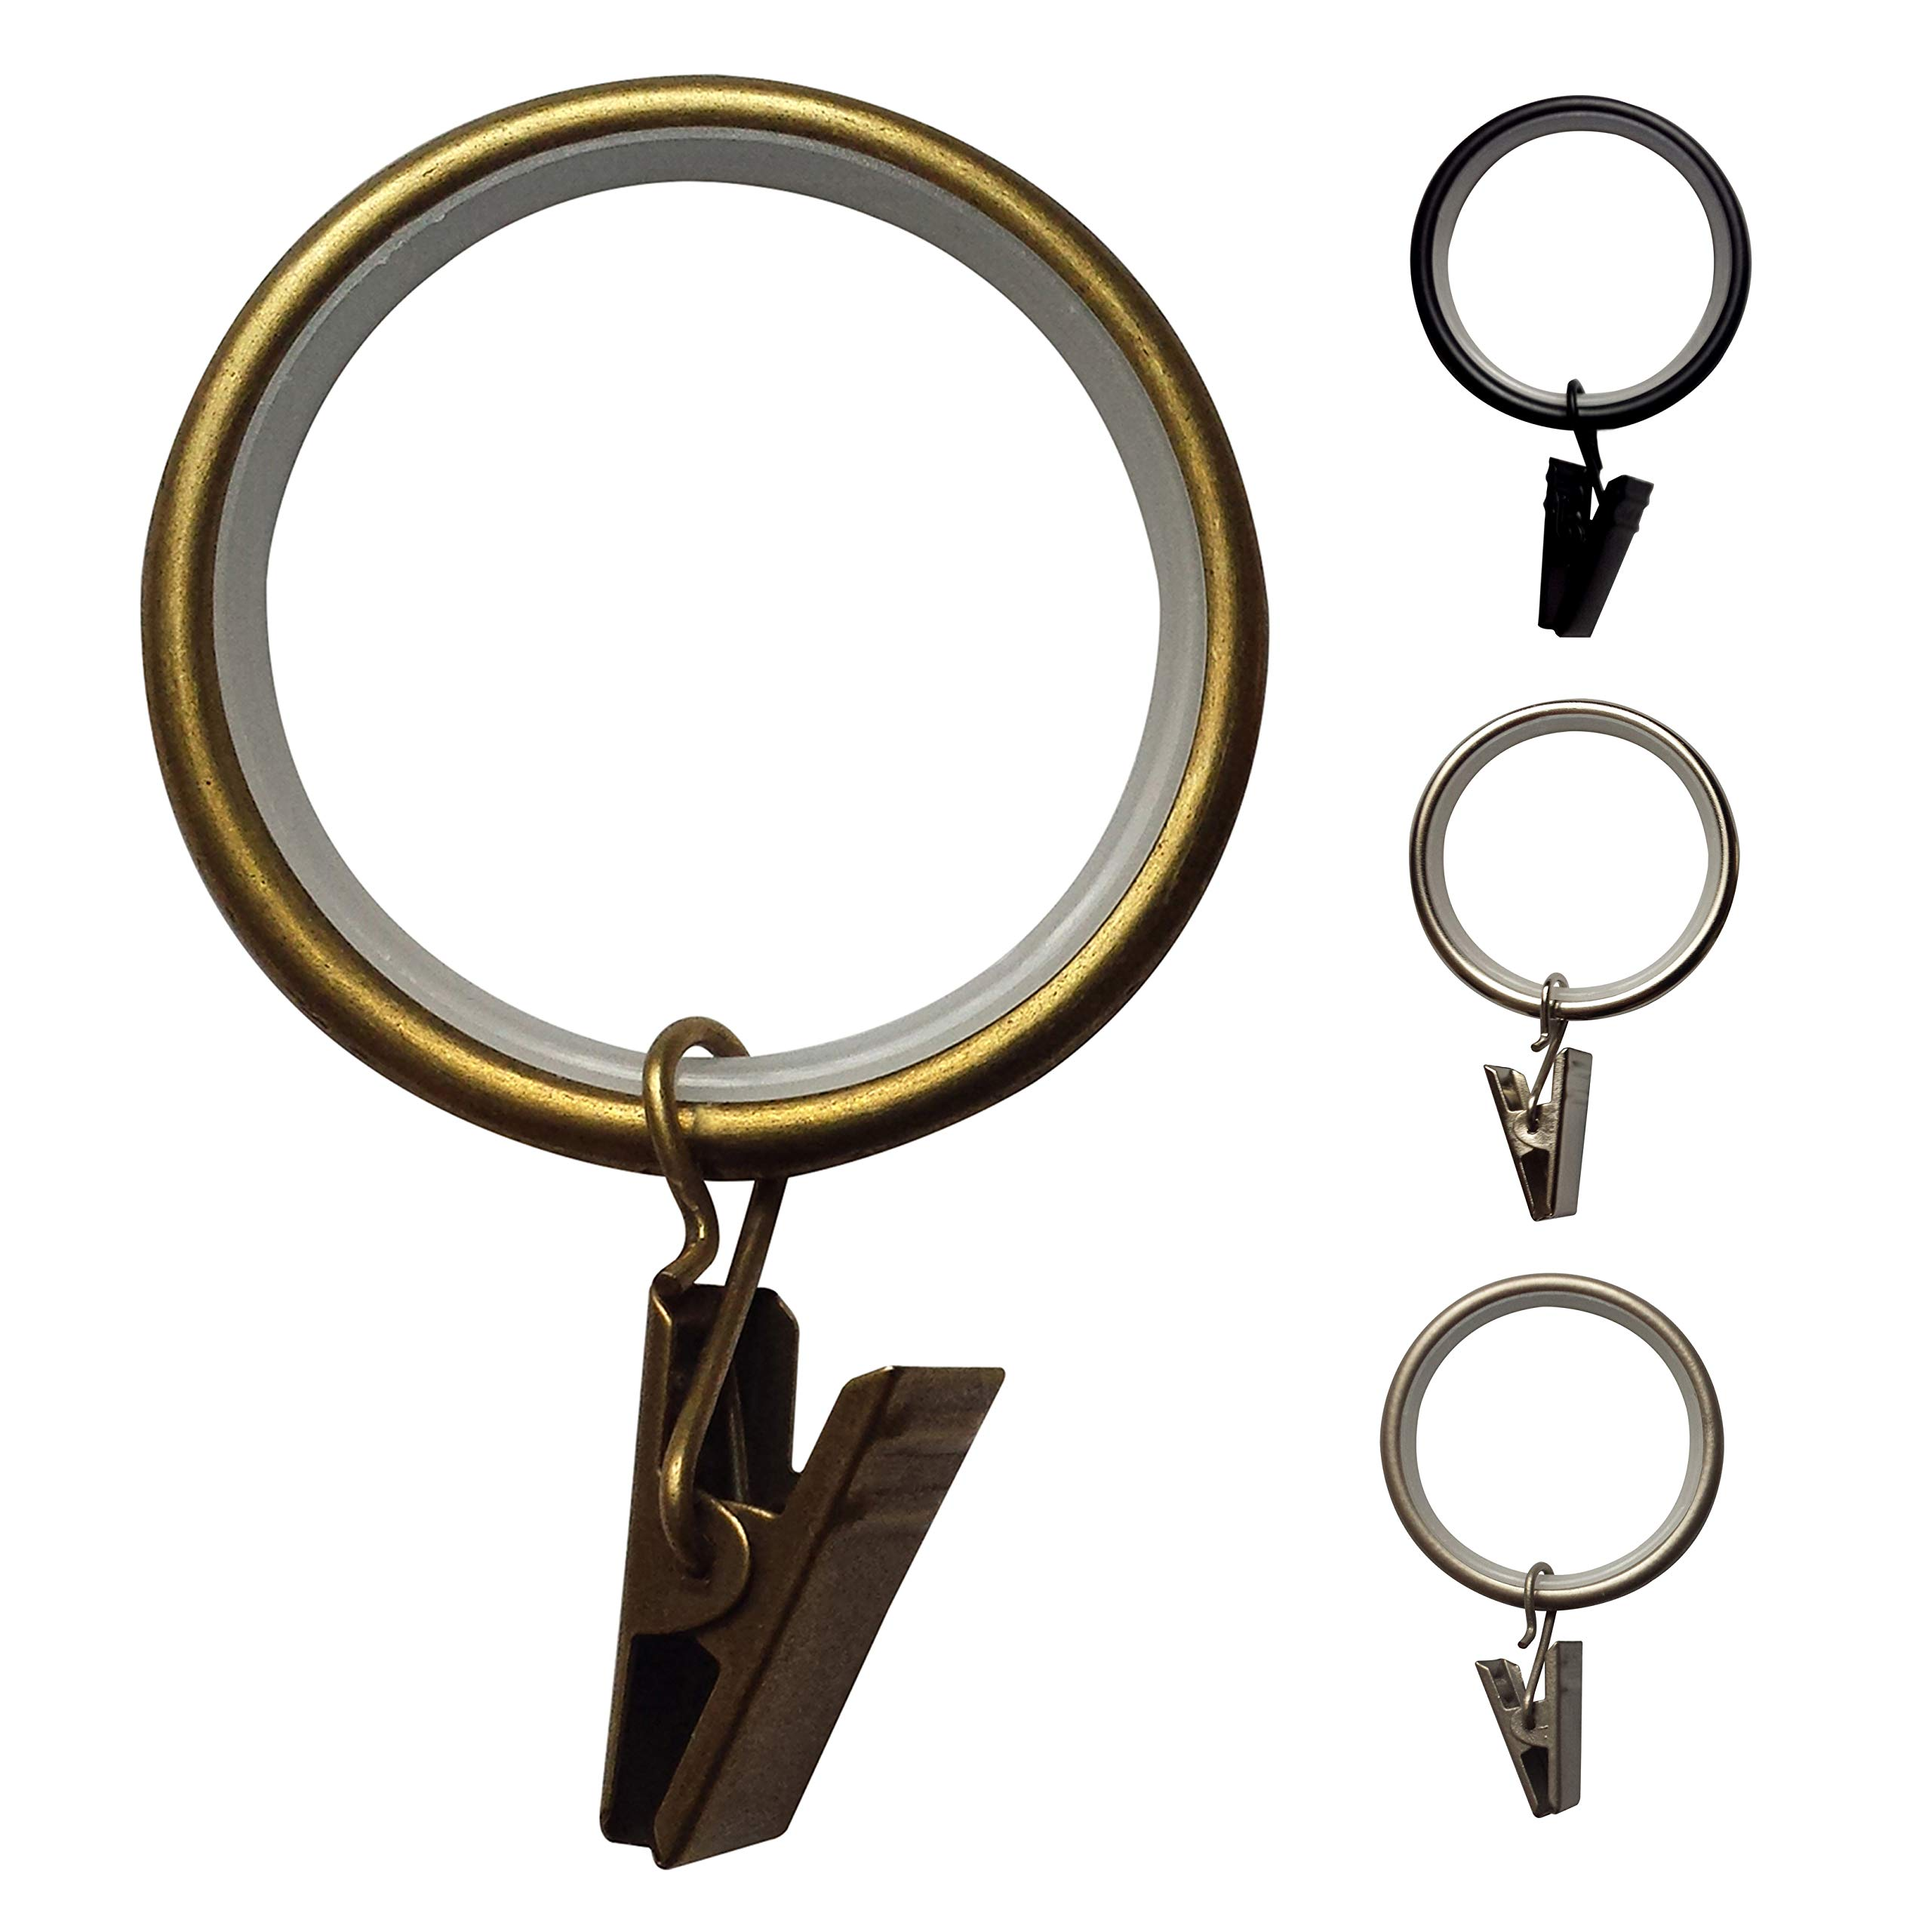 Curtain Clip Rings Quiet 1 3/8 inch - Set of 24 (Antique Brass)